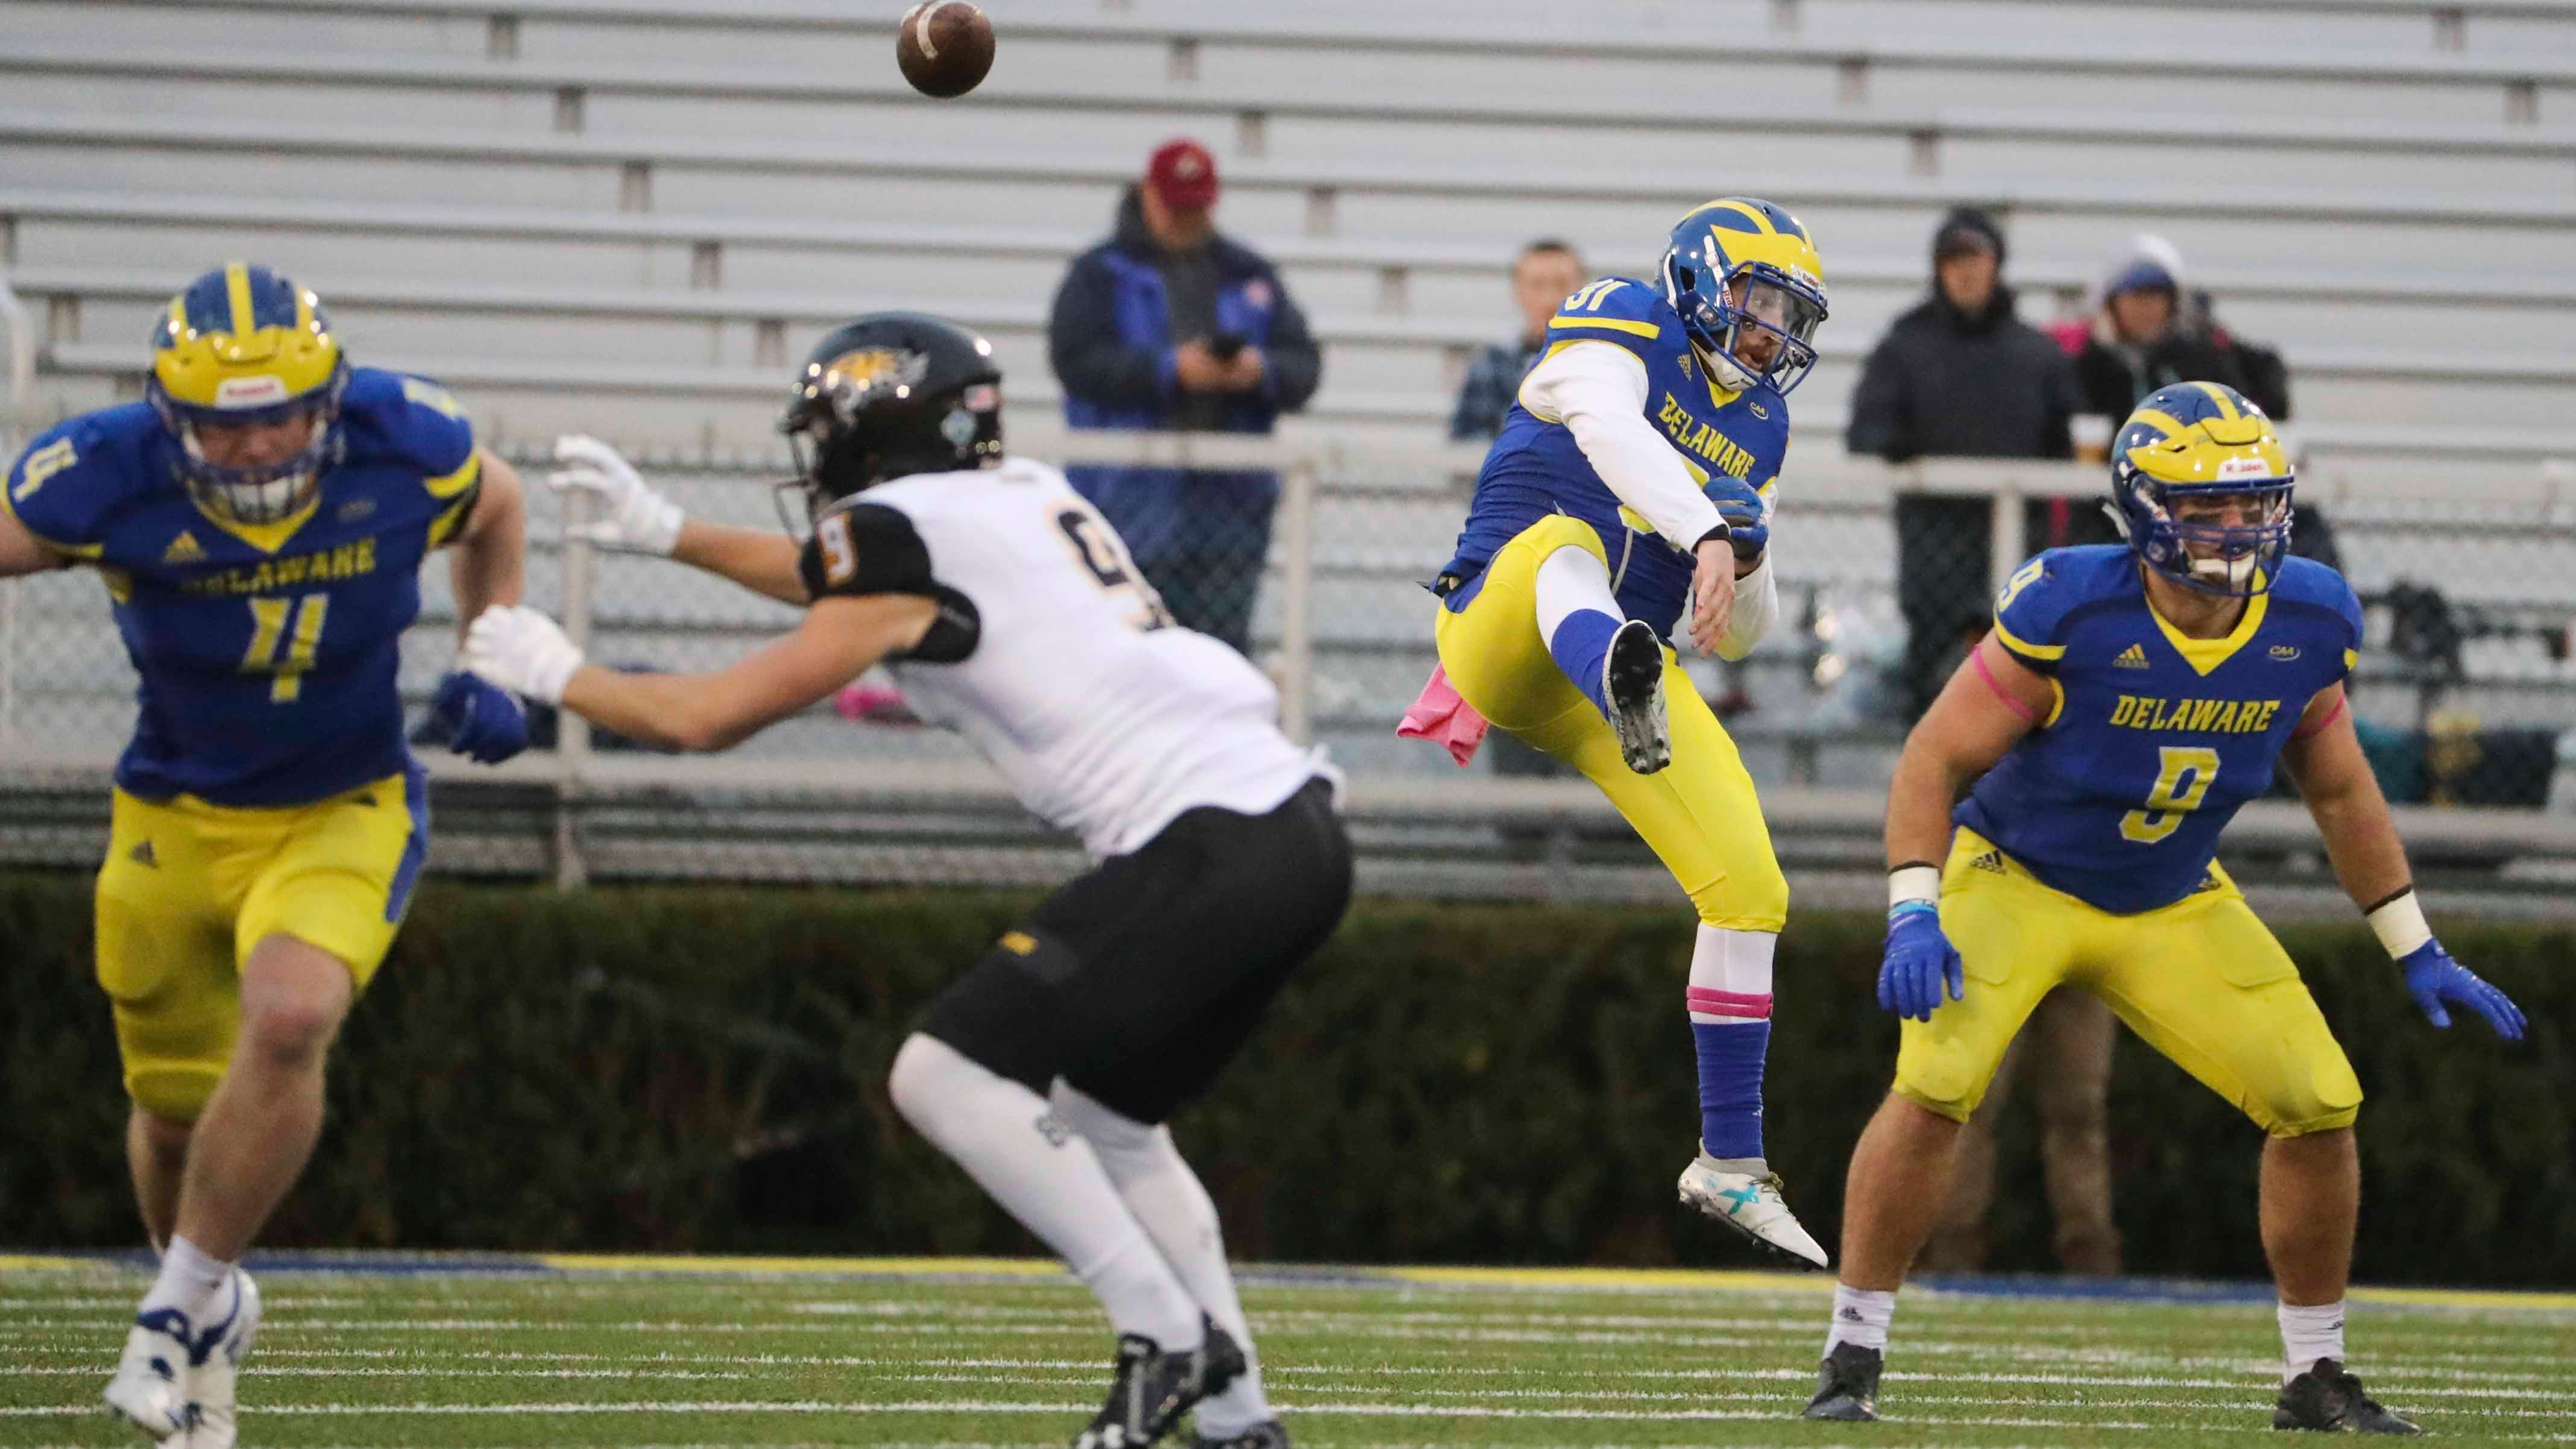 University of Delaware-Towson 5 Takeaways: Blue Hens win despite many miscues